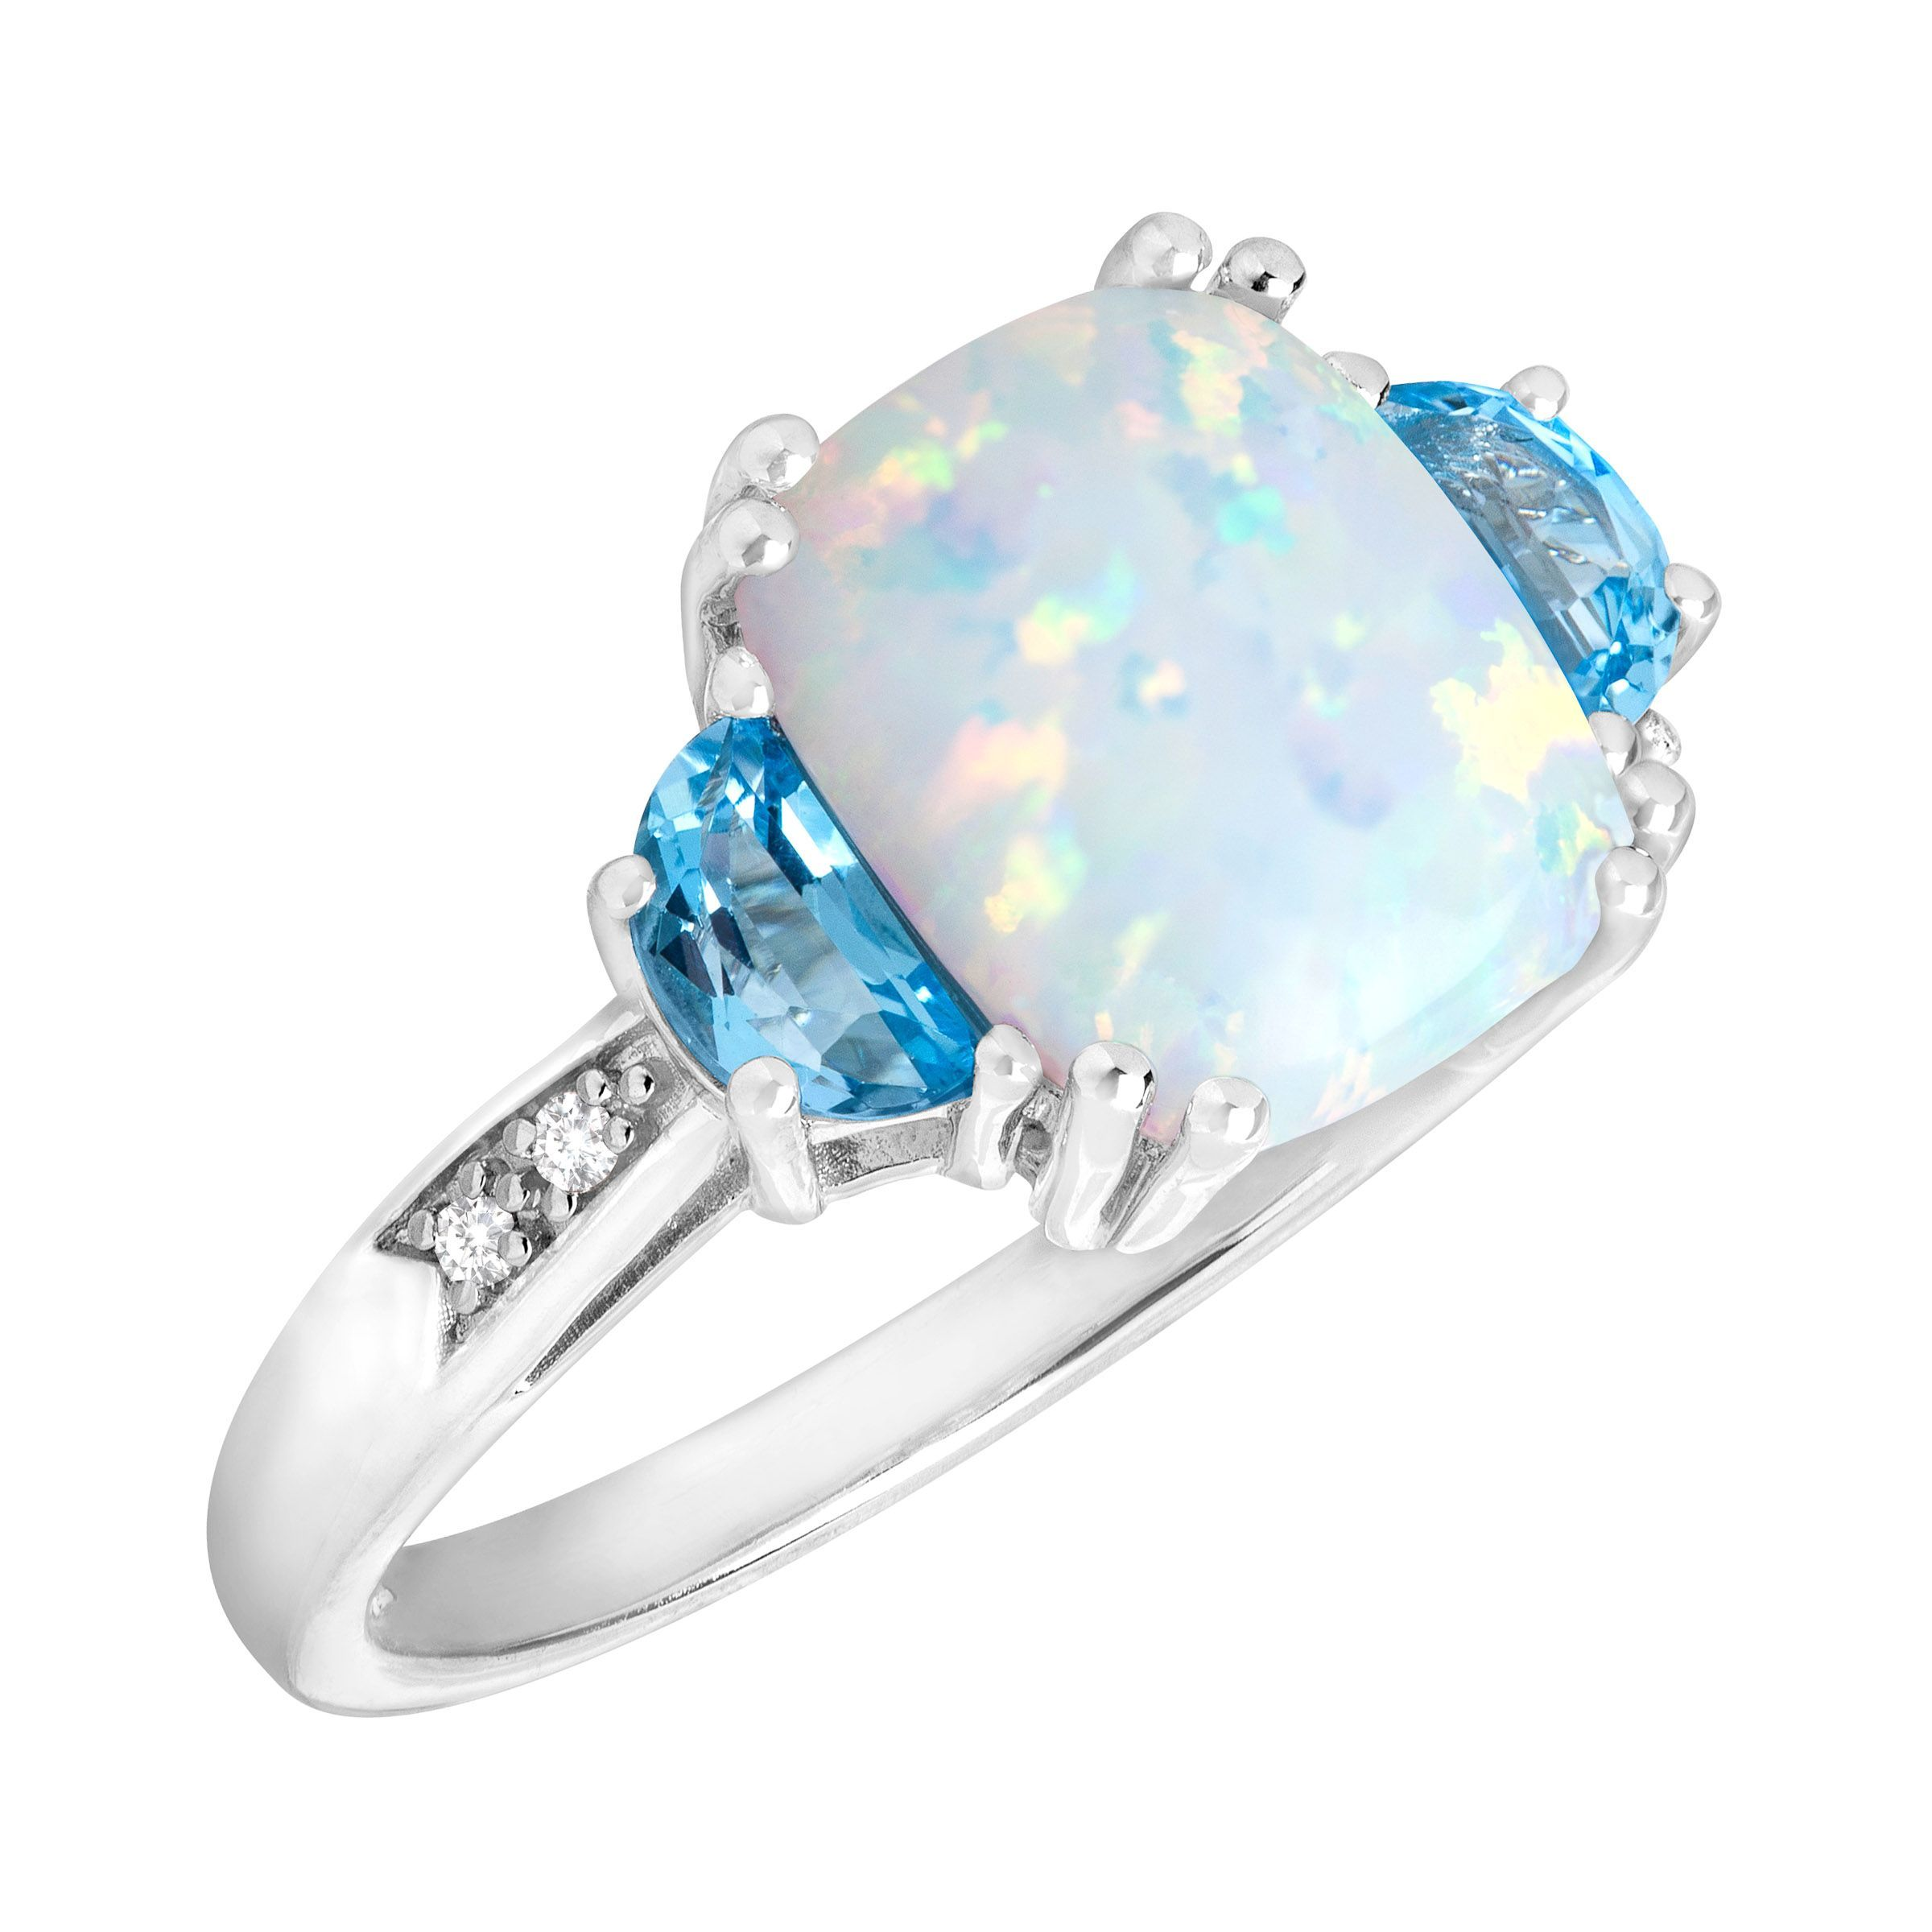 2 3 8 ct opal swiss blue topaz ring with